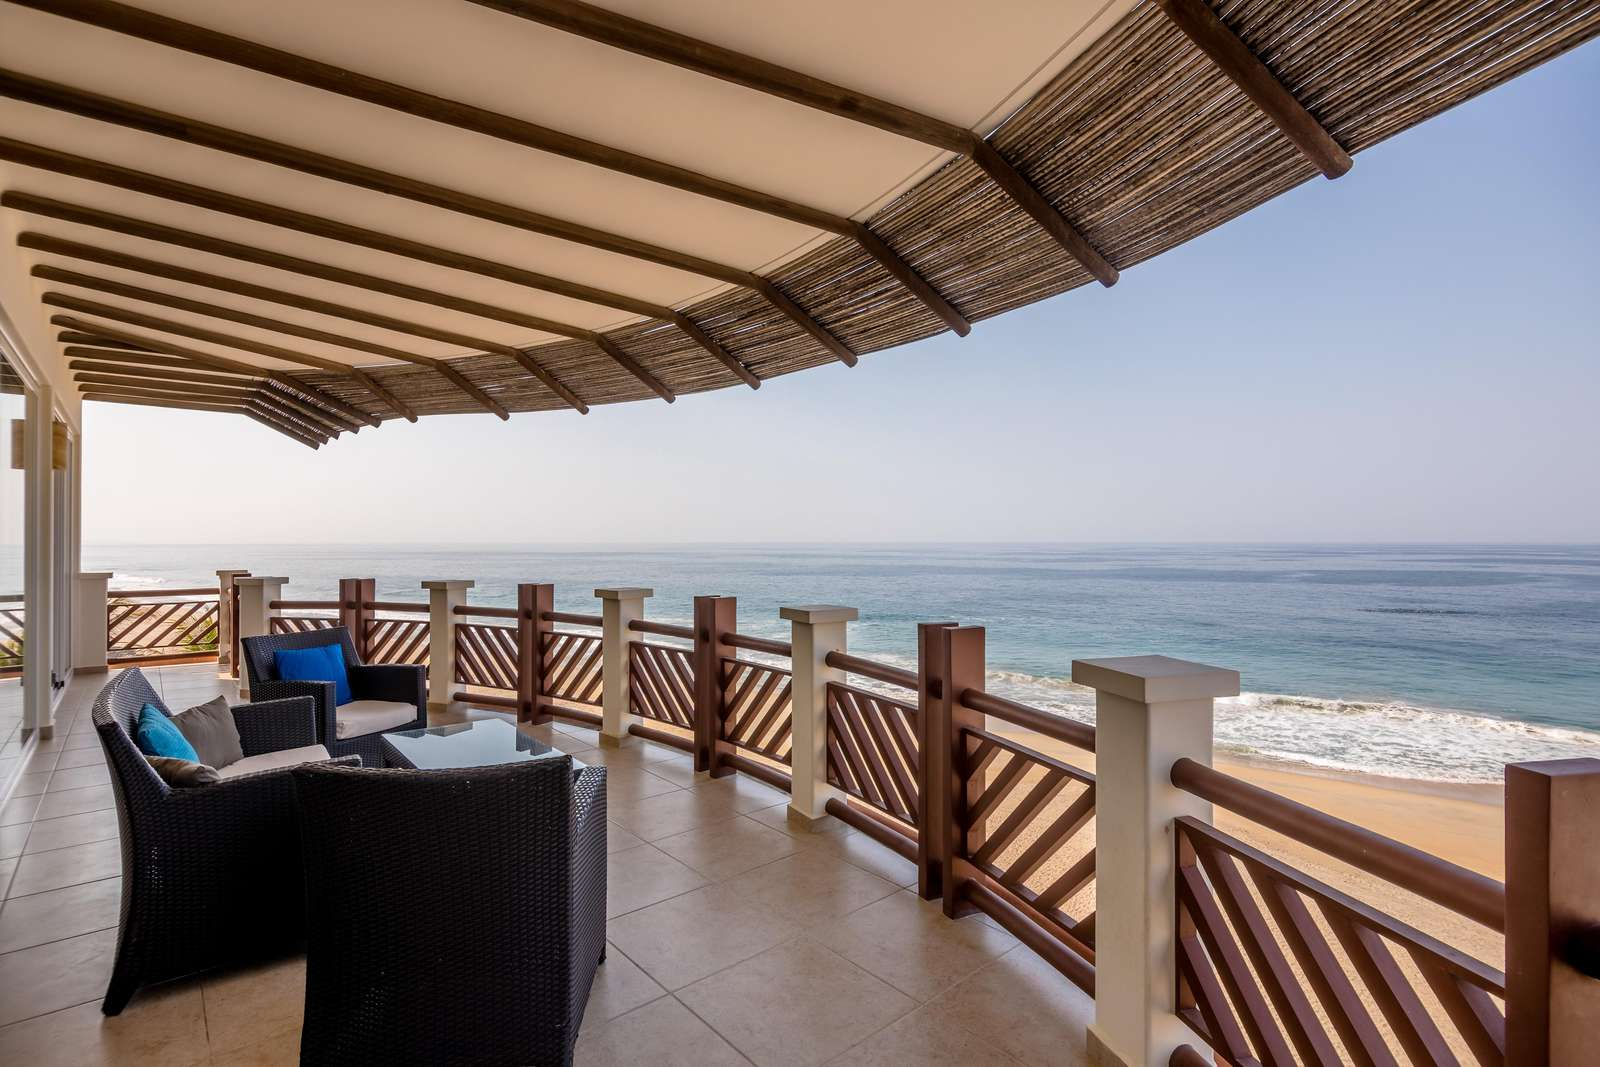 85338 – Four bedroom with ocean view - property